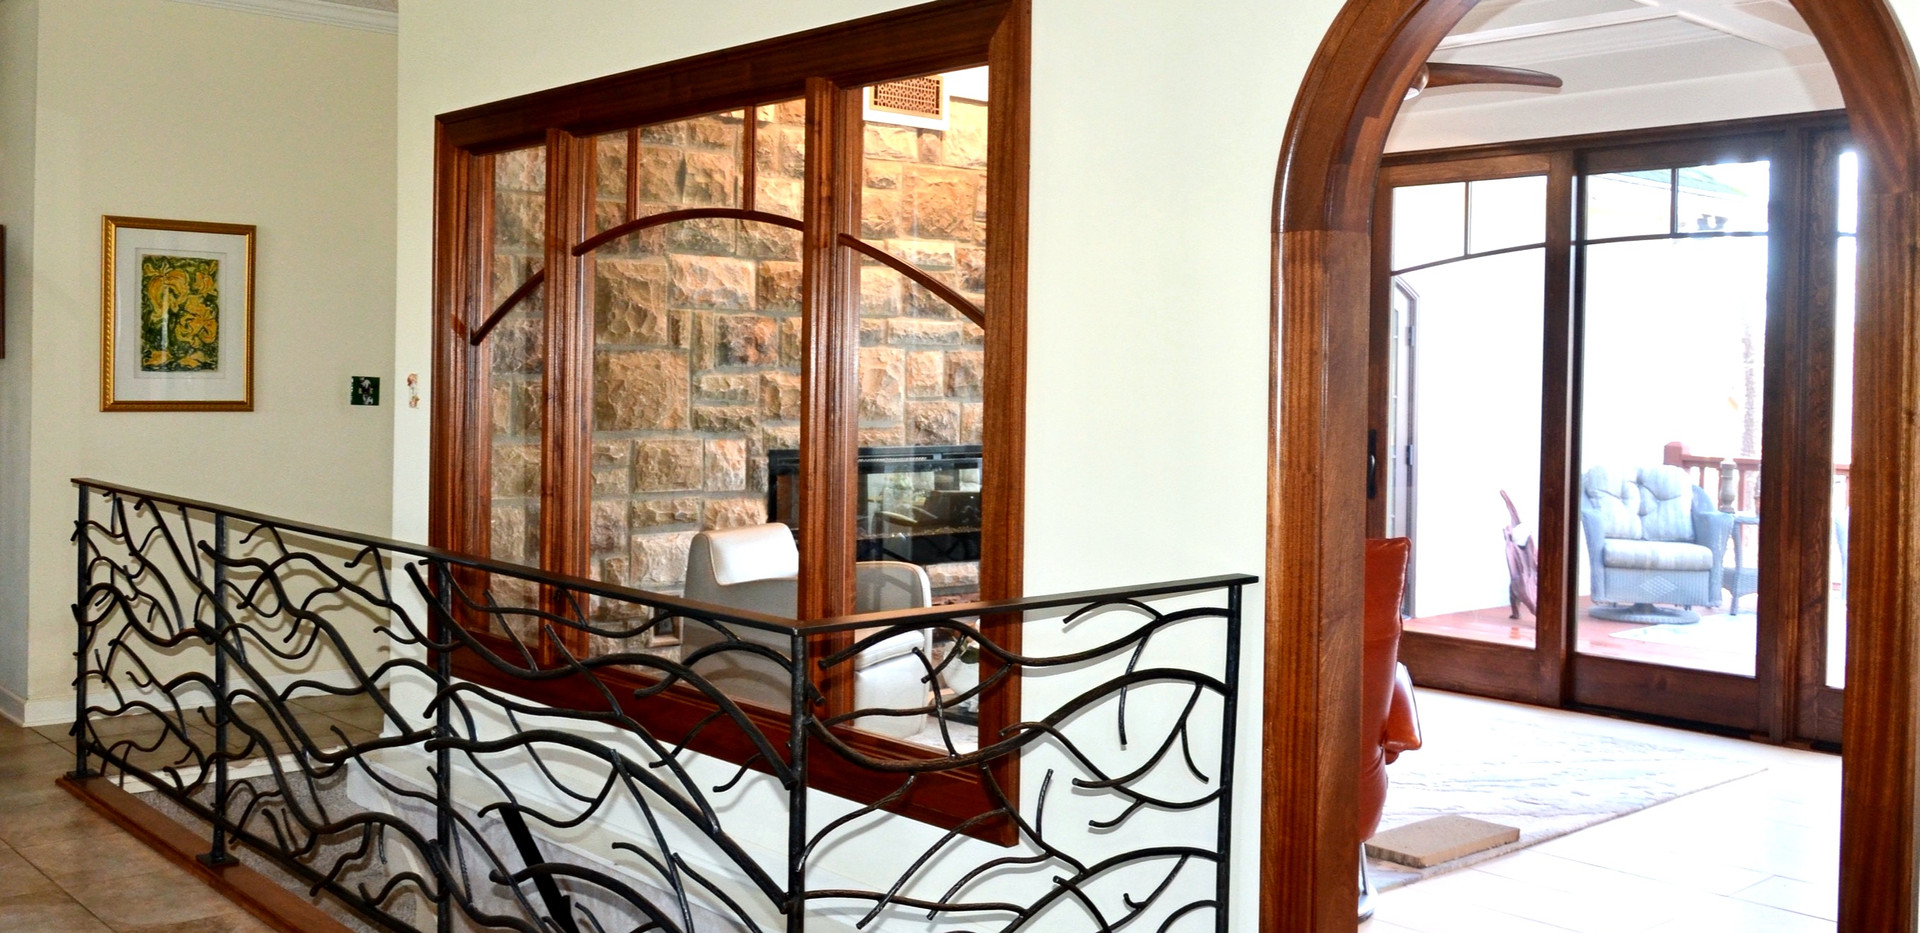 custom railings, windows, arch